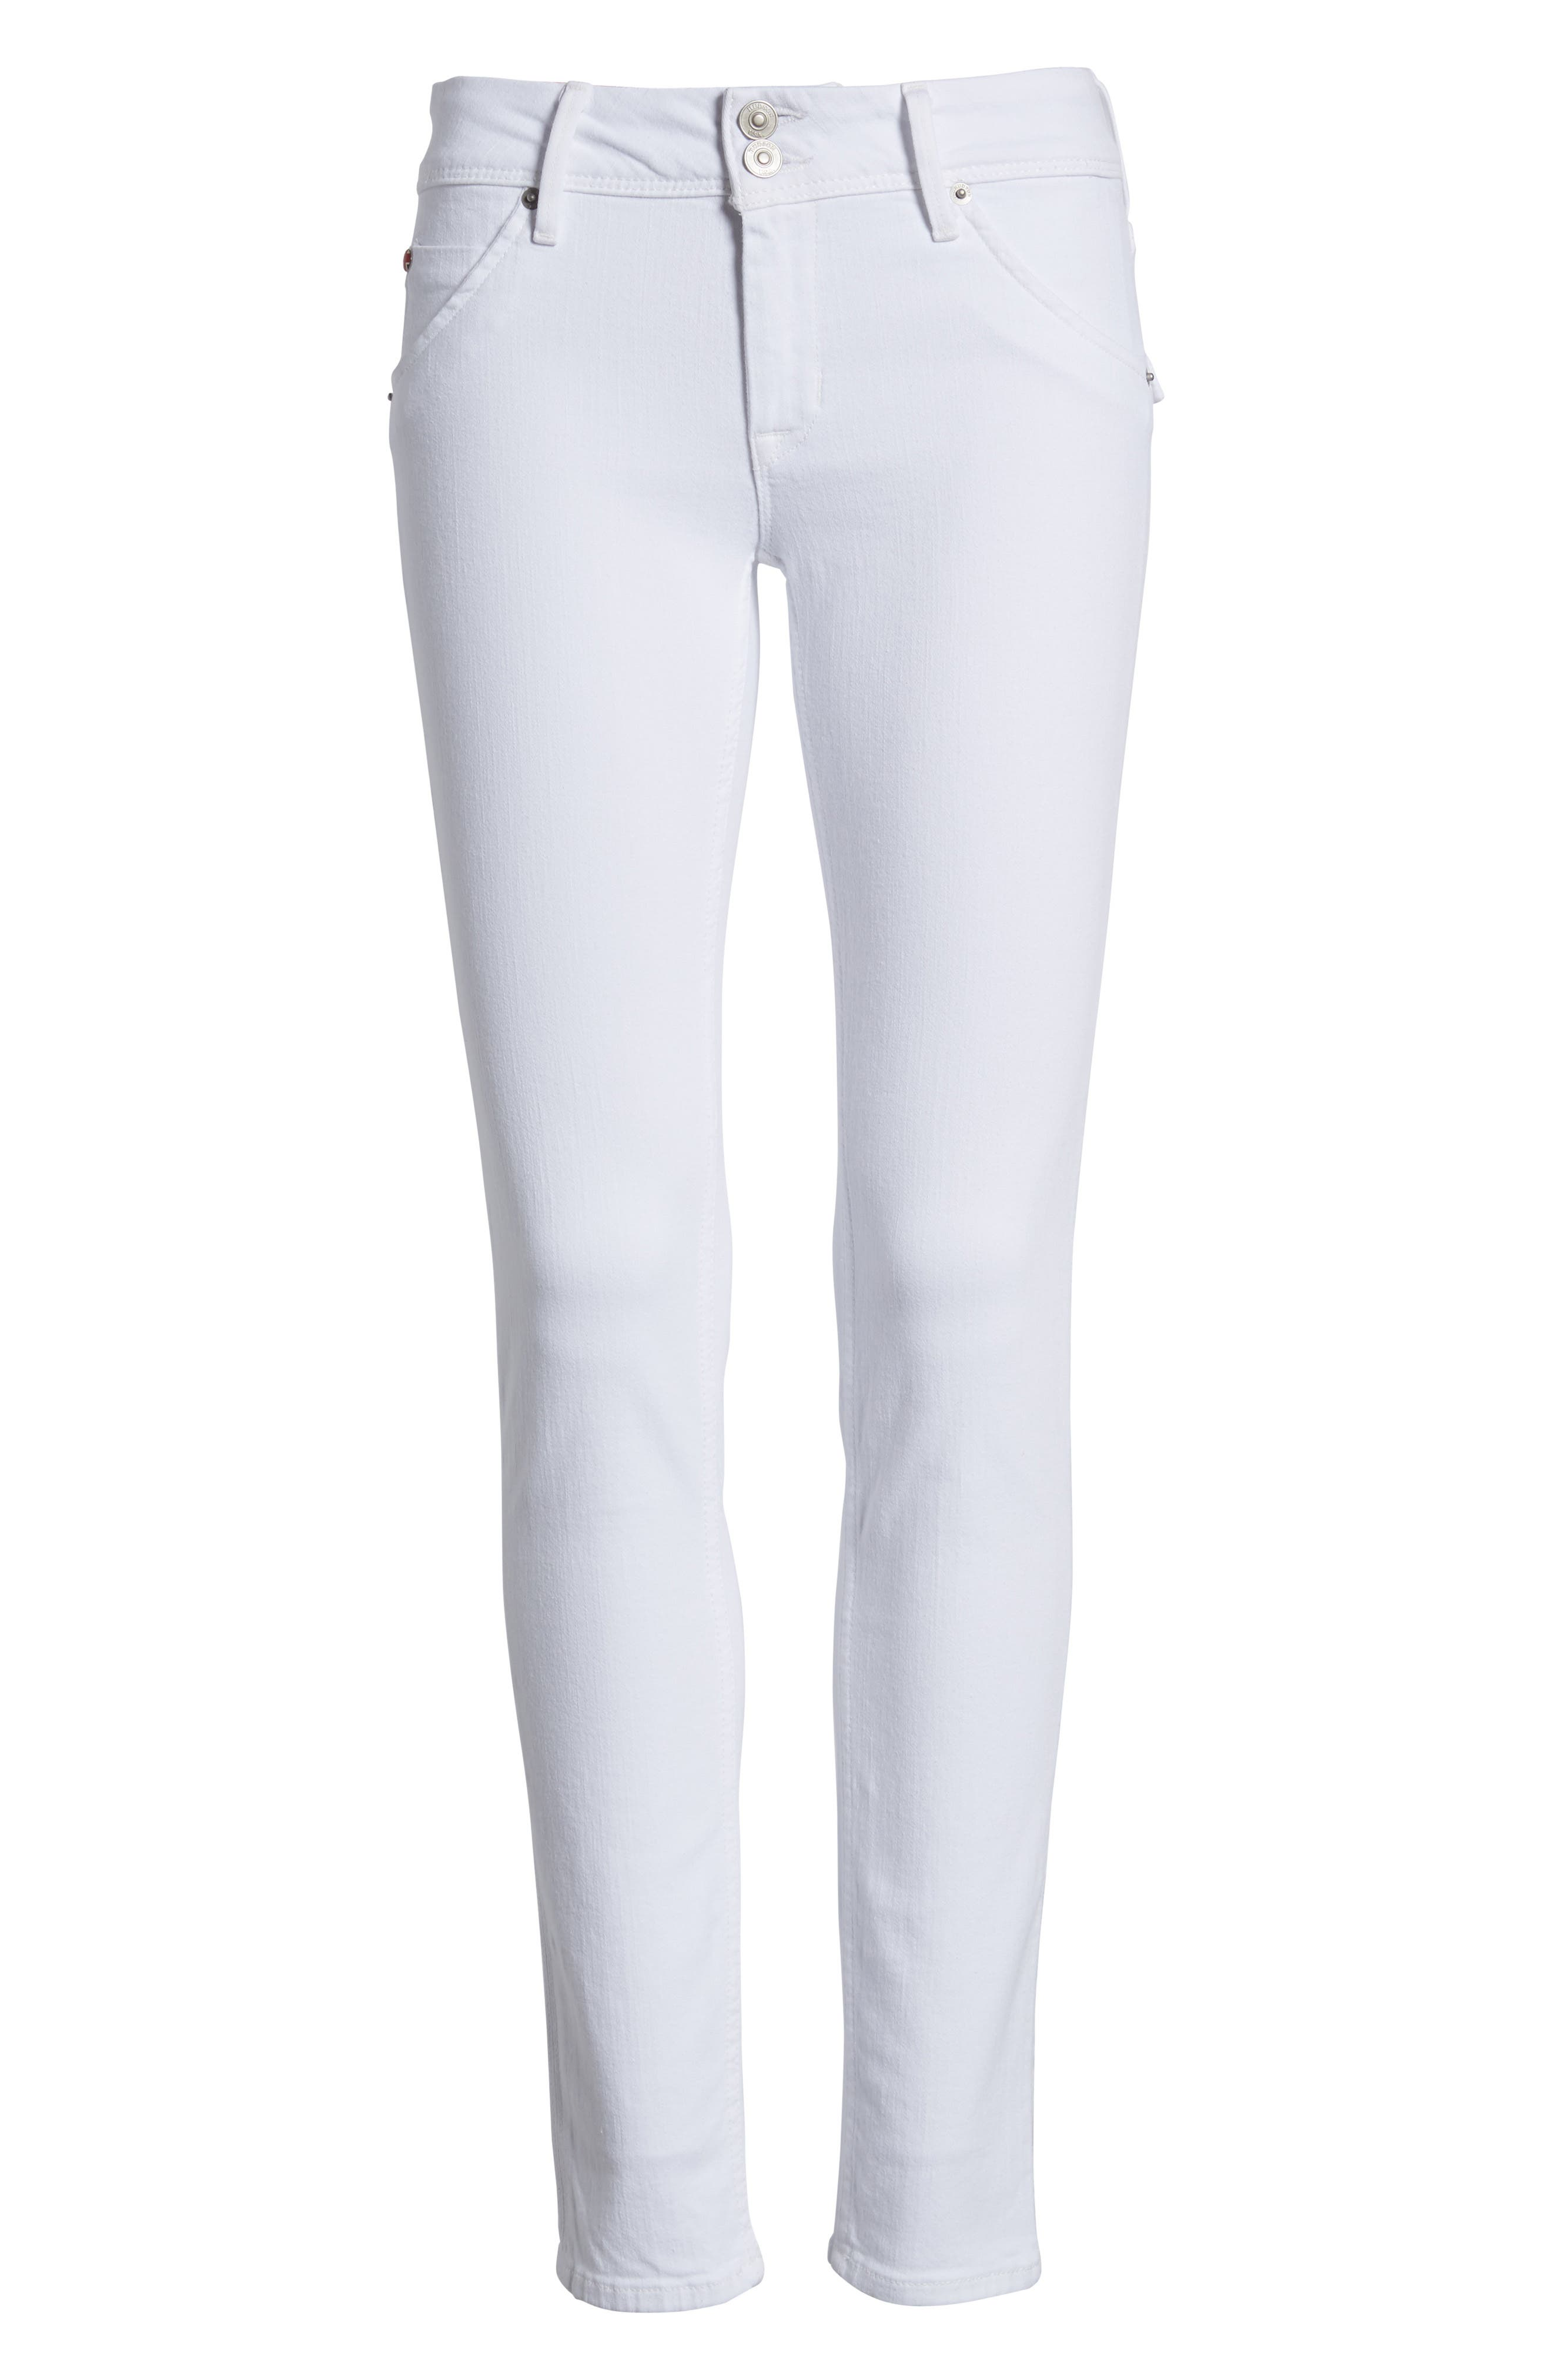 Collin Skinny Jeans,                             Alternate thumbnail 7, color,                             Optical White